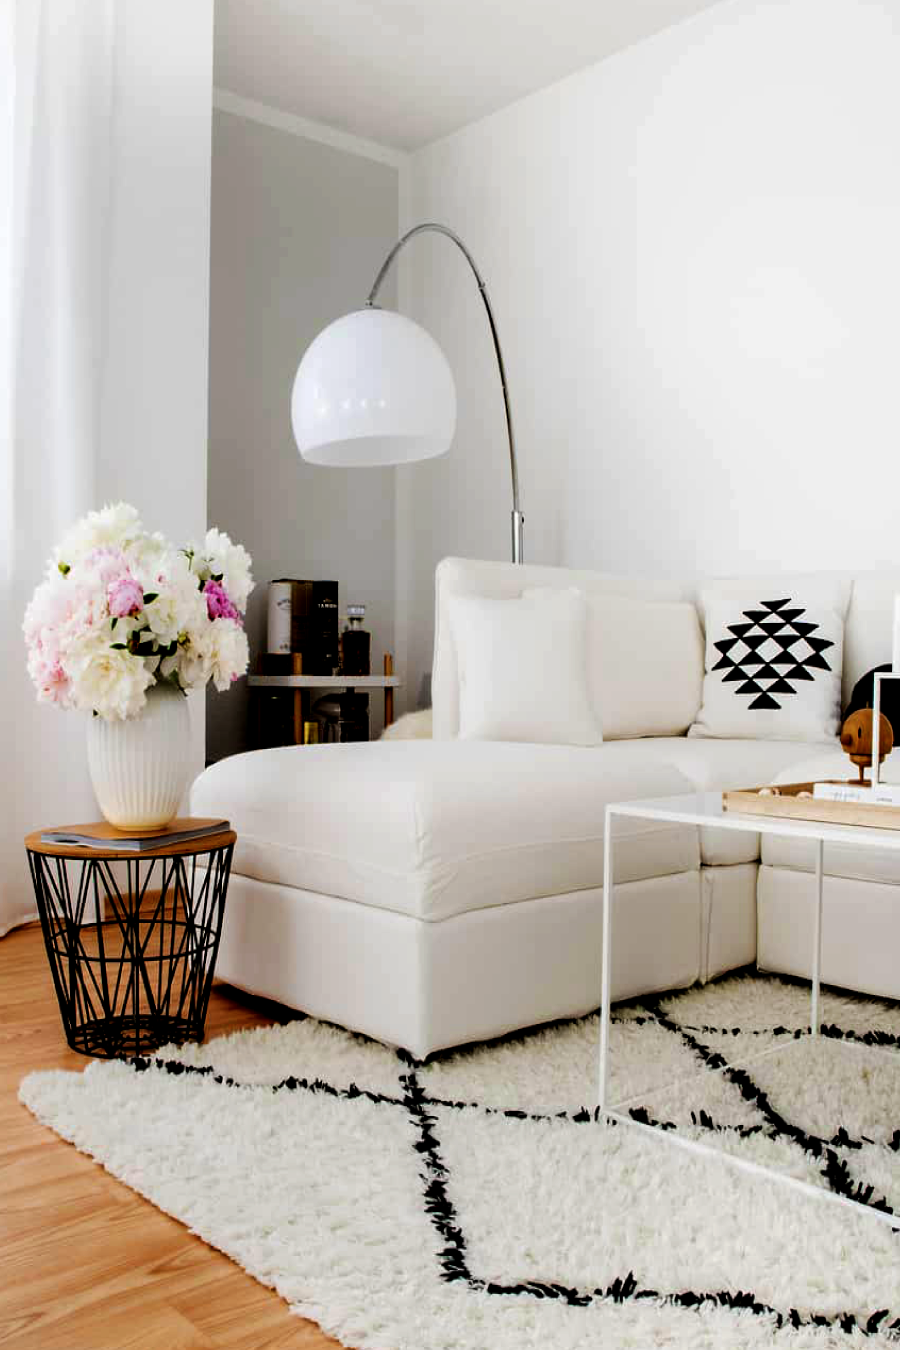 Ikea Vallentuna Sectional Sofa With Chaise In Gaia White Stark White Cotton Sofa Slipcovers By Comfort Vallentuna Living Room White Sectional Sofa With Chaise